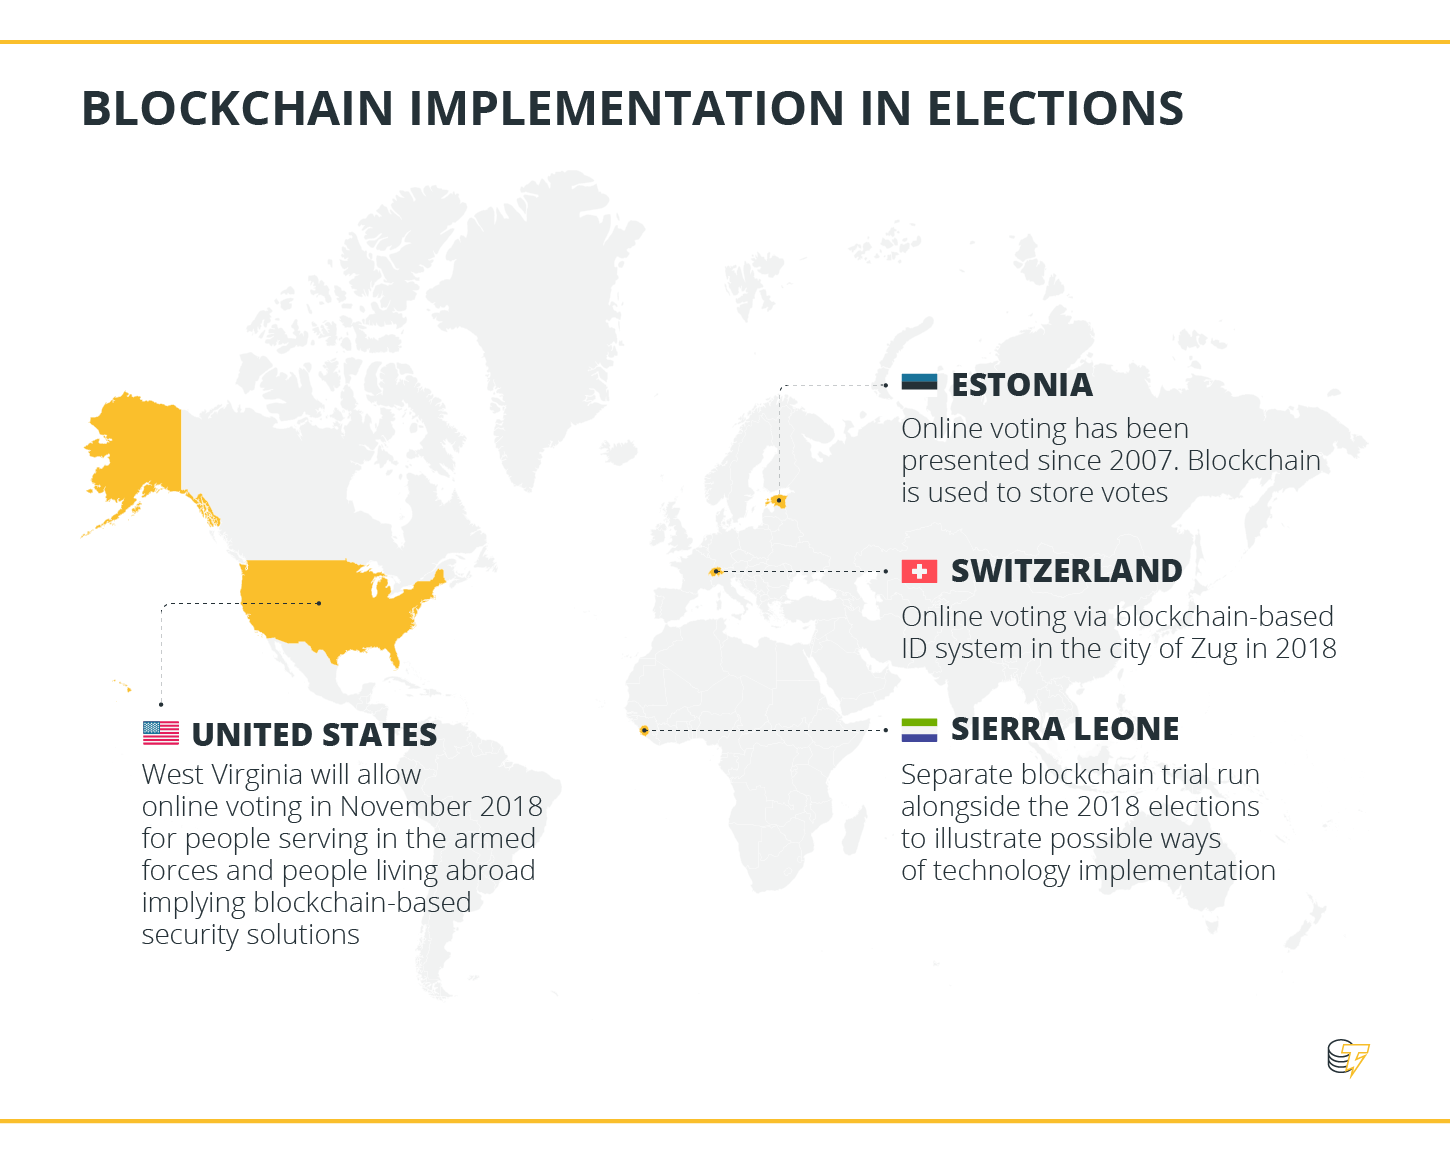 Blockchain implementation in elections